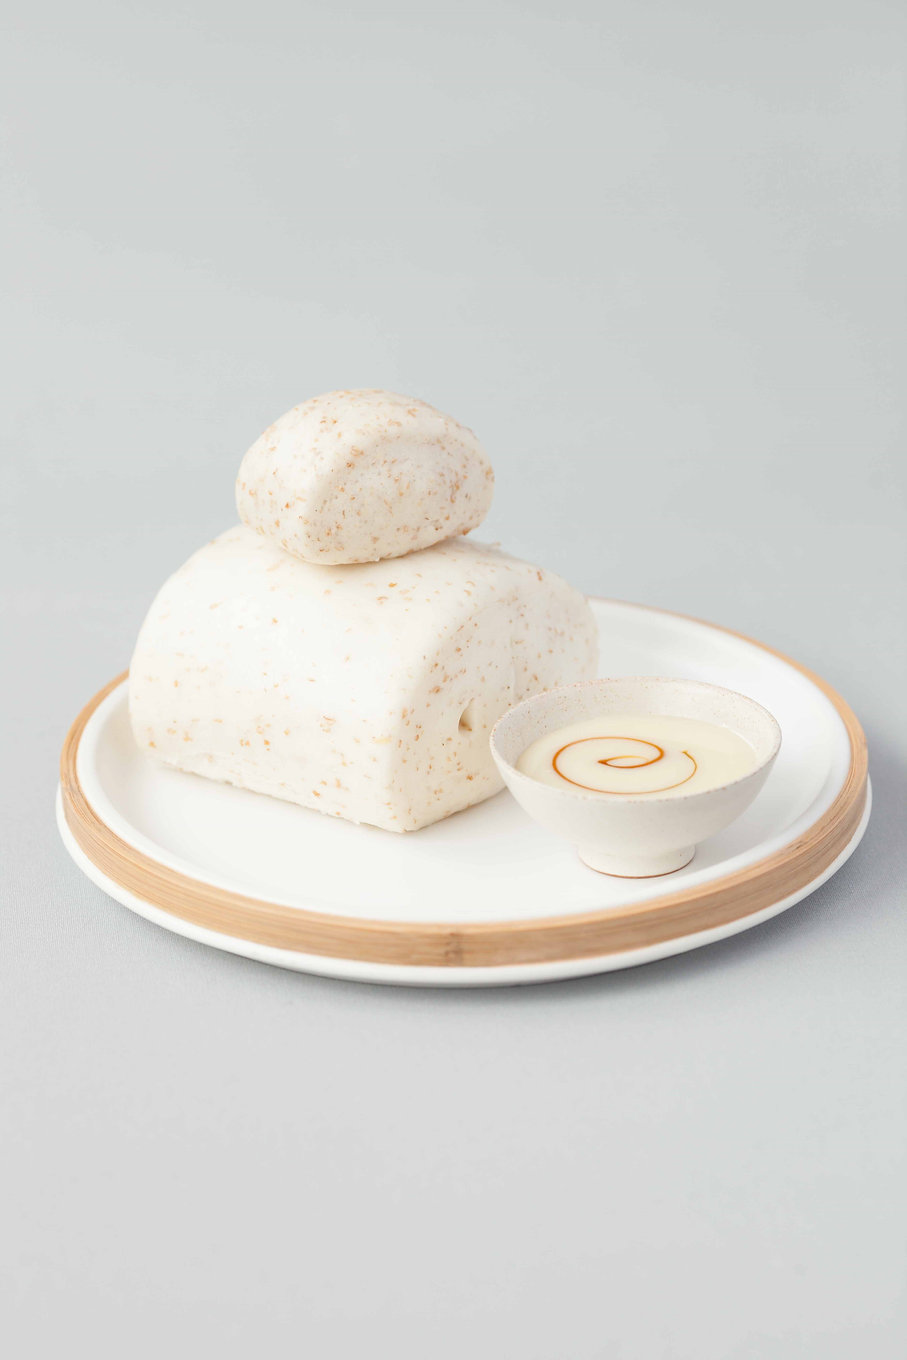 48. Steamed Coconut Milk Buns with Oat B